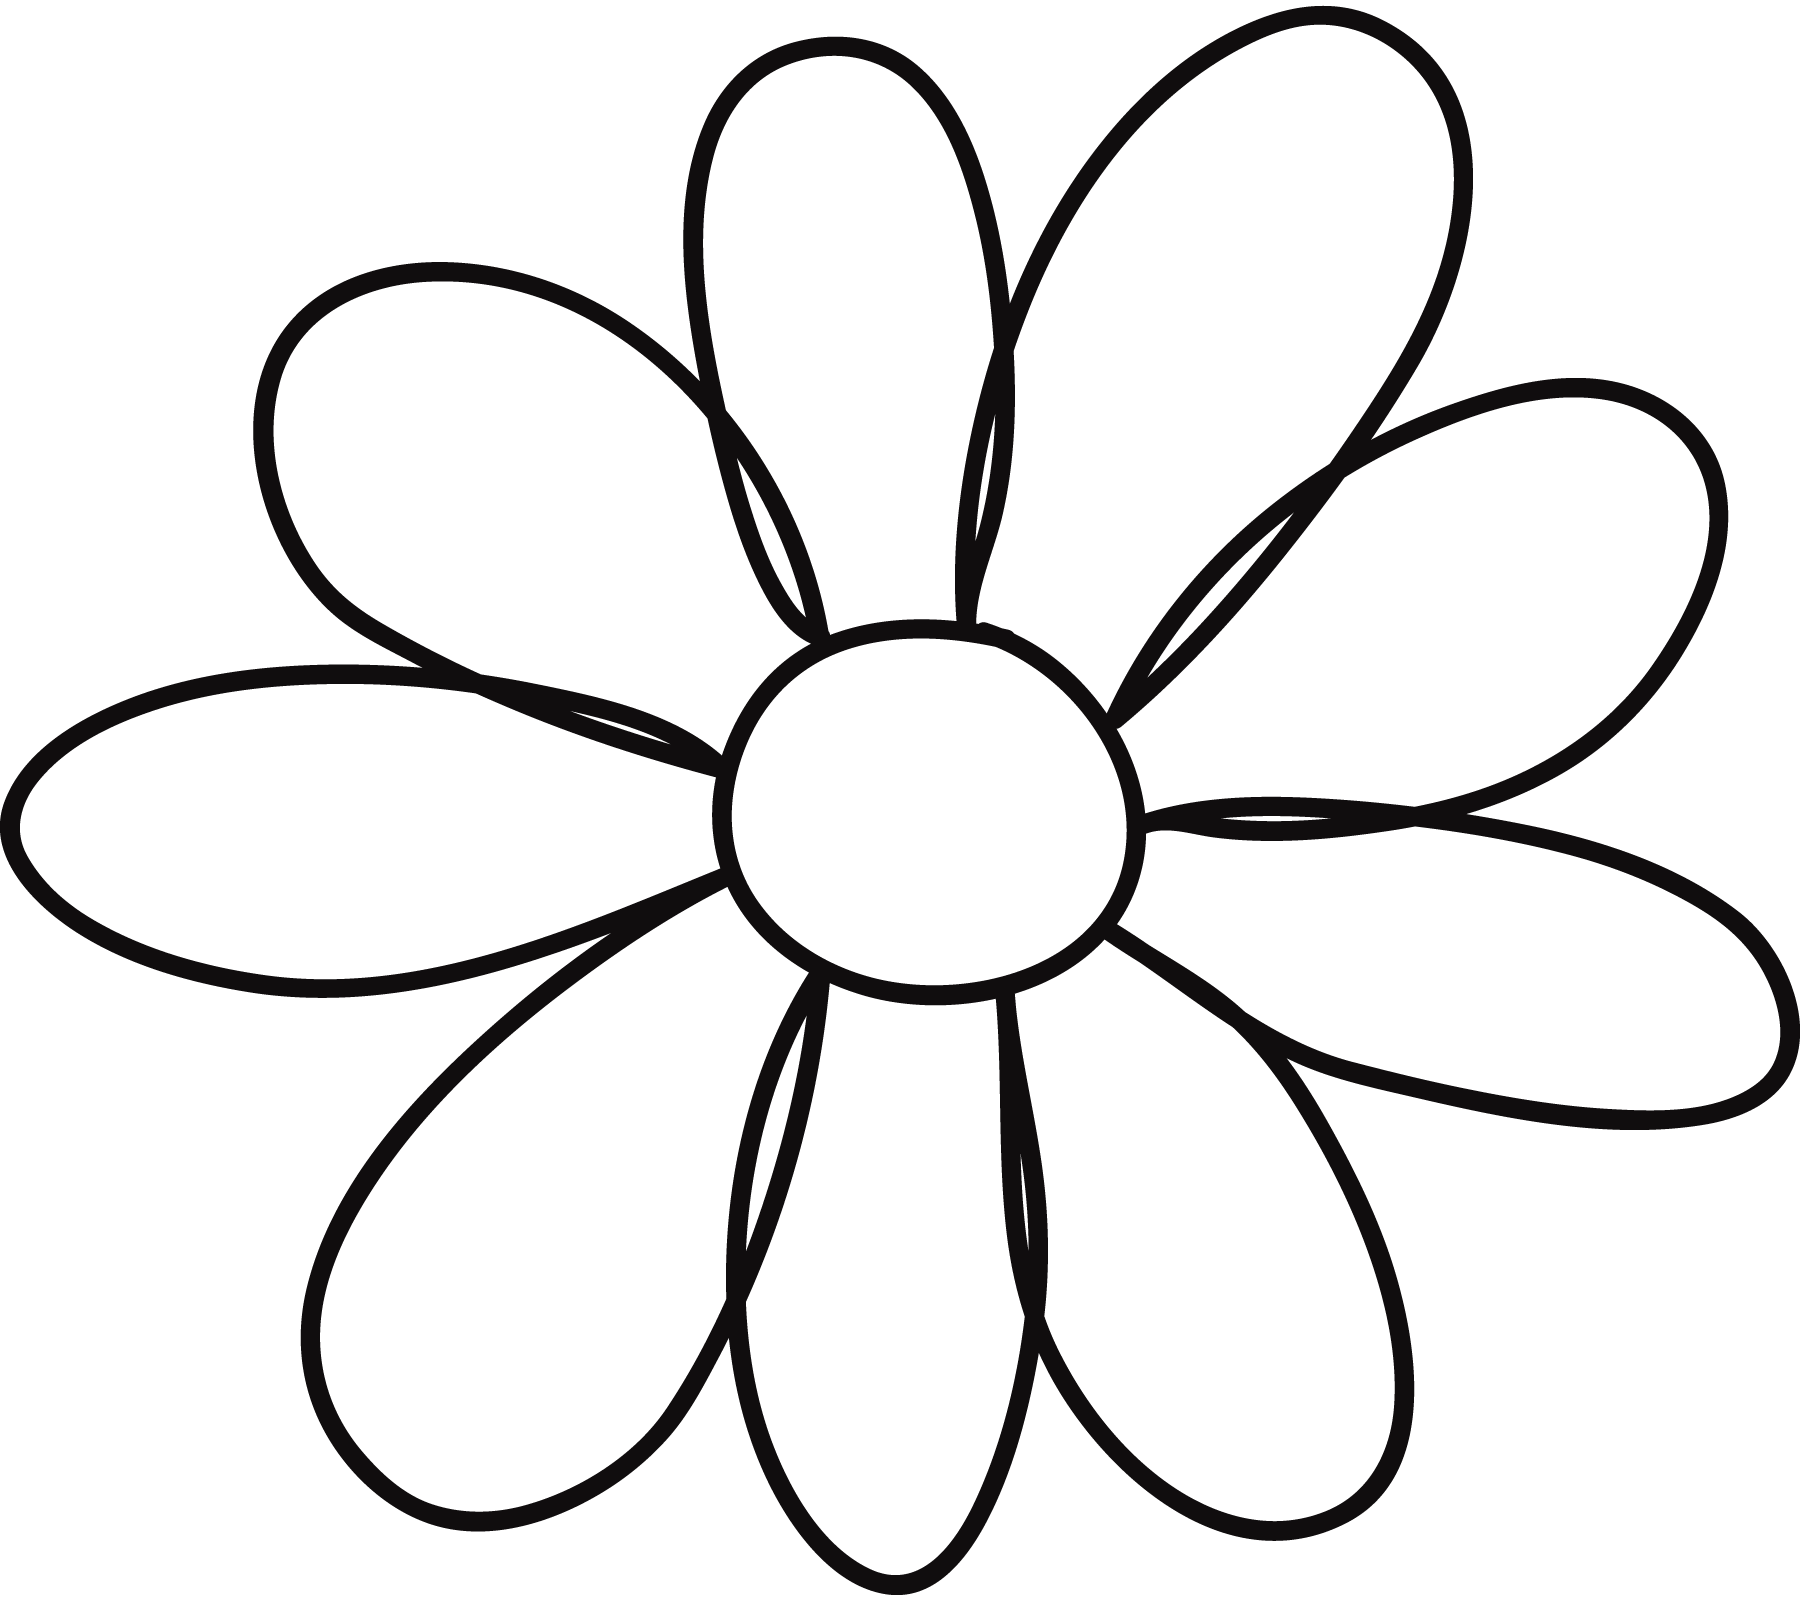 10 petal flower template clipart best clipart best for Daisy cut out template